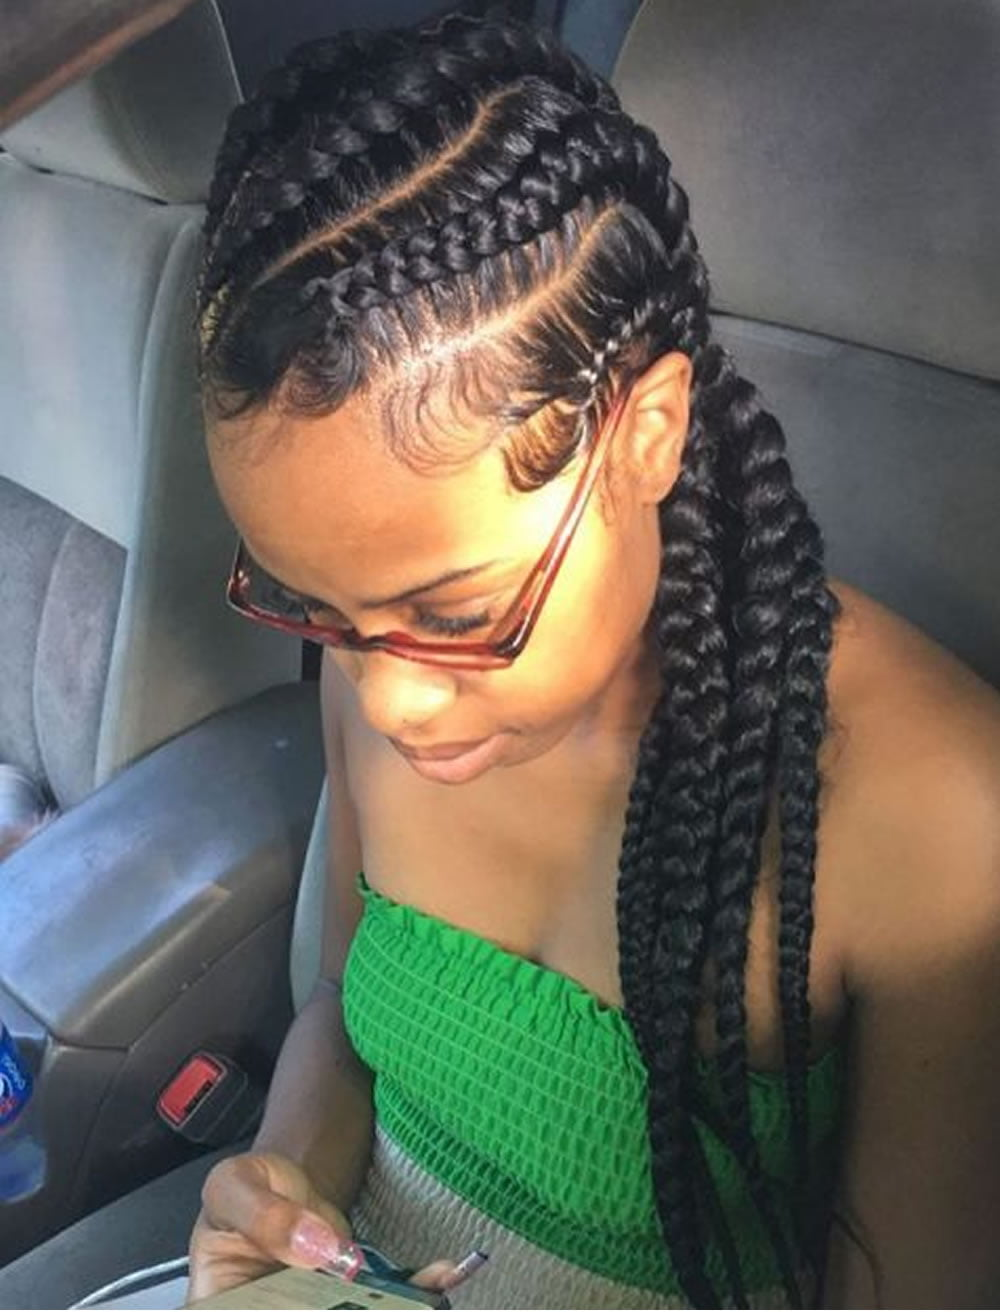 20 Best African American Braided Hairstyles For Women 2020